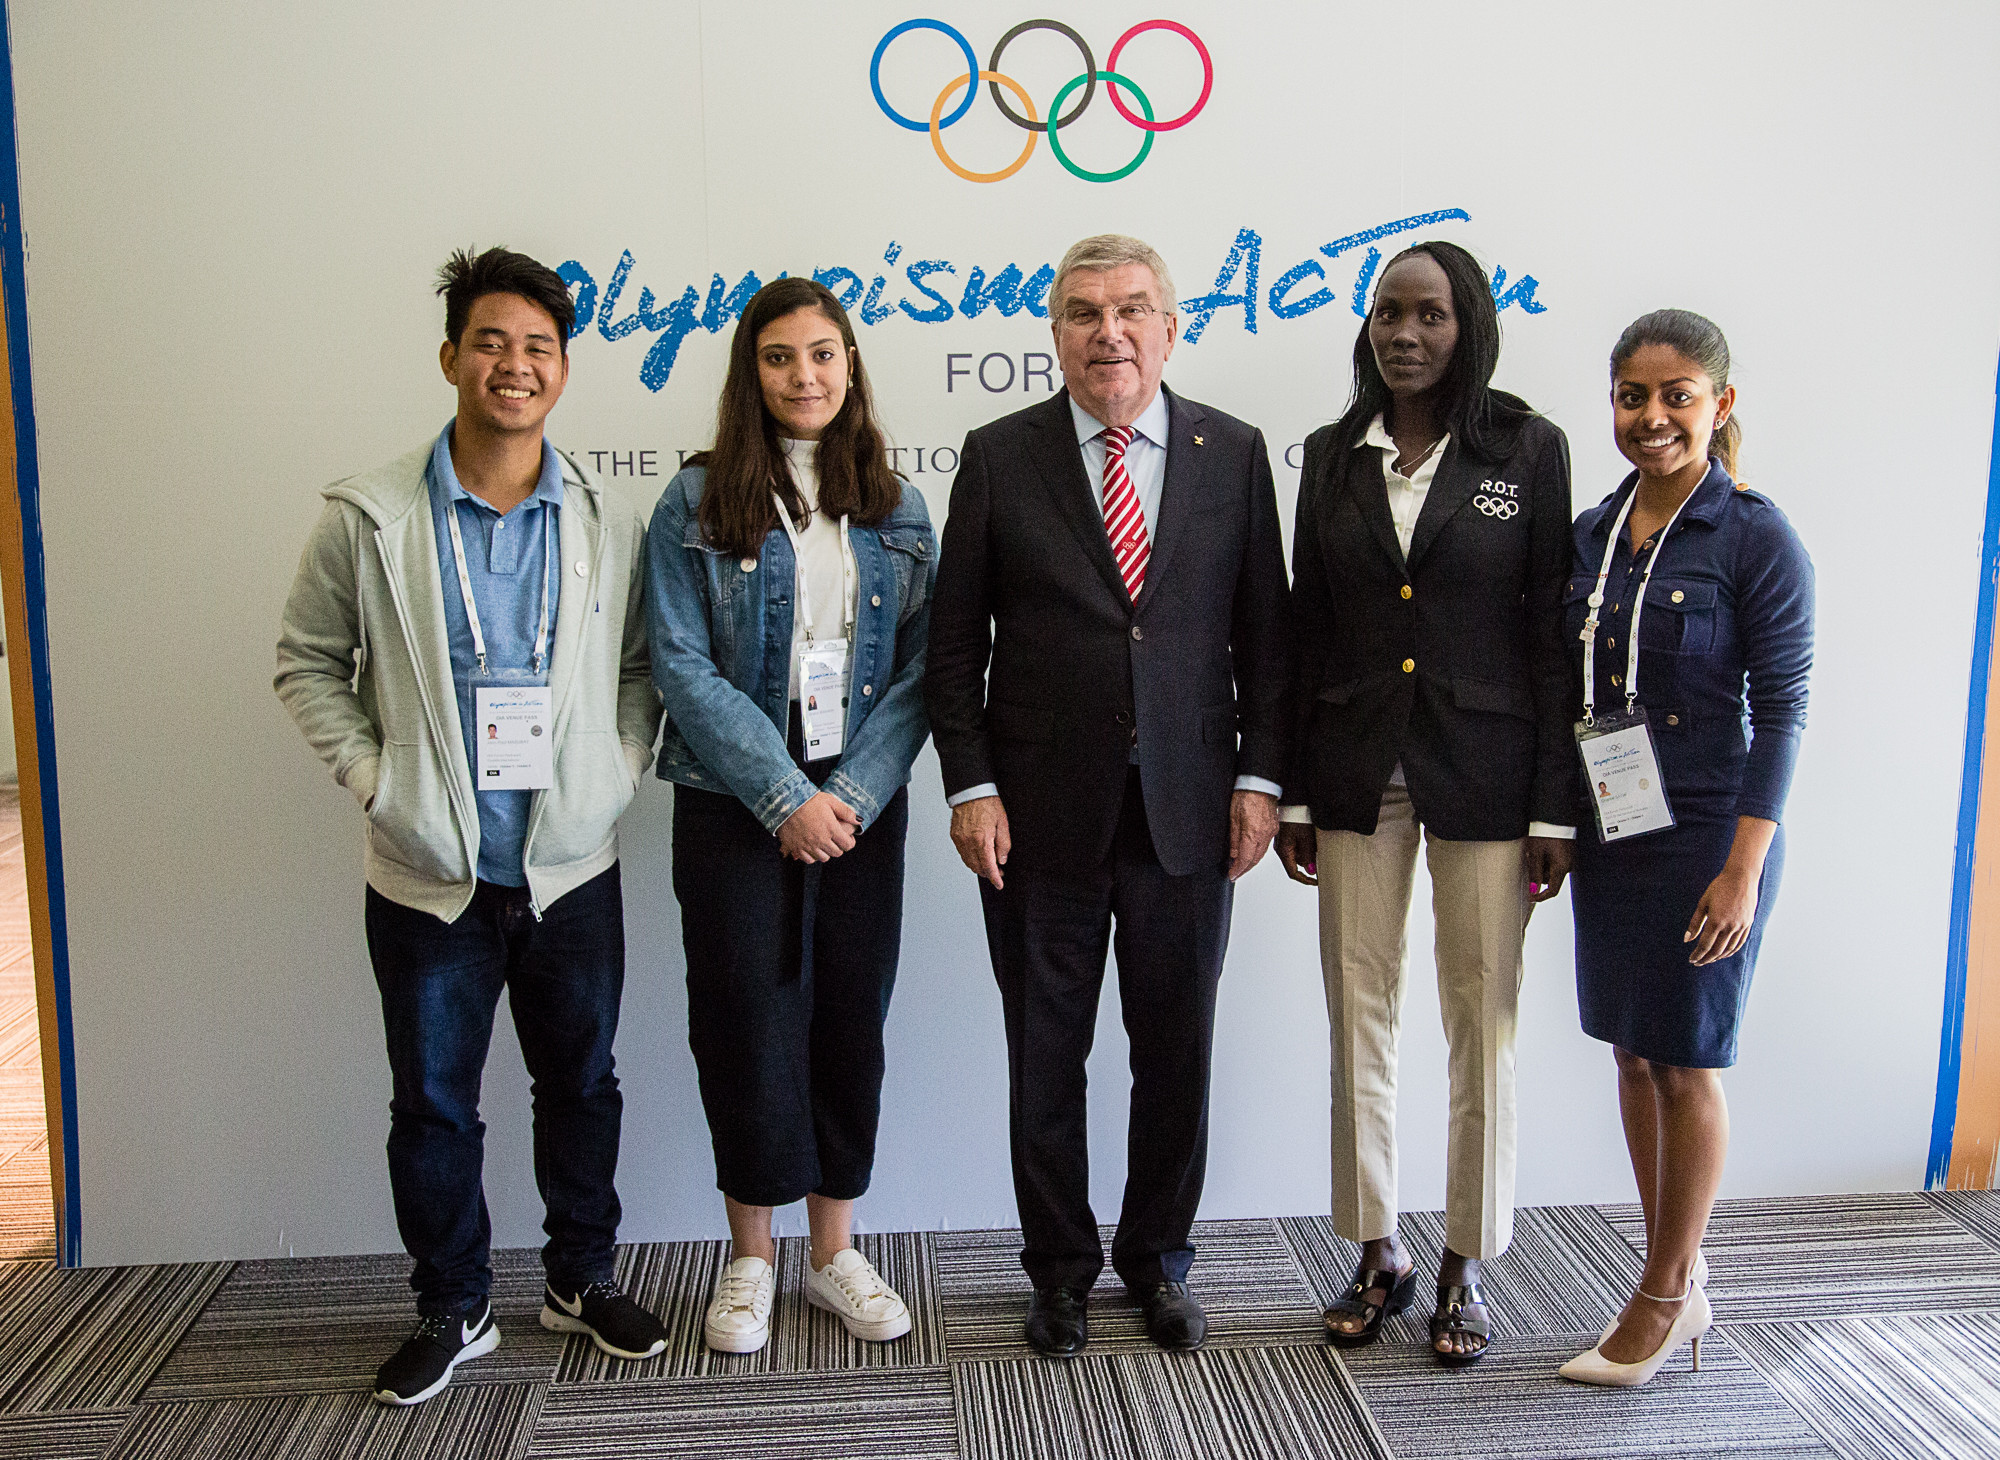 Bach meets athletes involved in Sport at the Service of Humanity's Young Leaders Mentoring Program